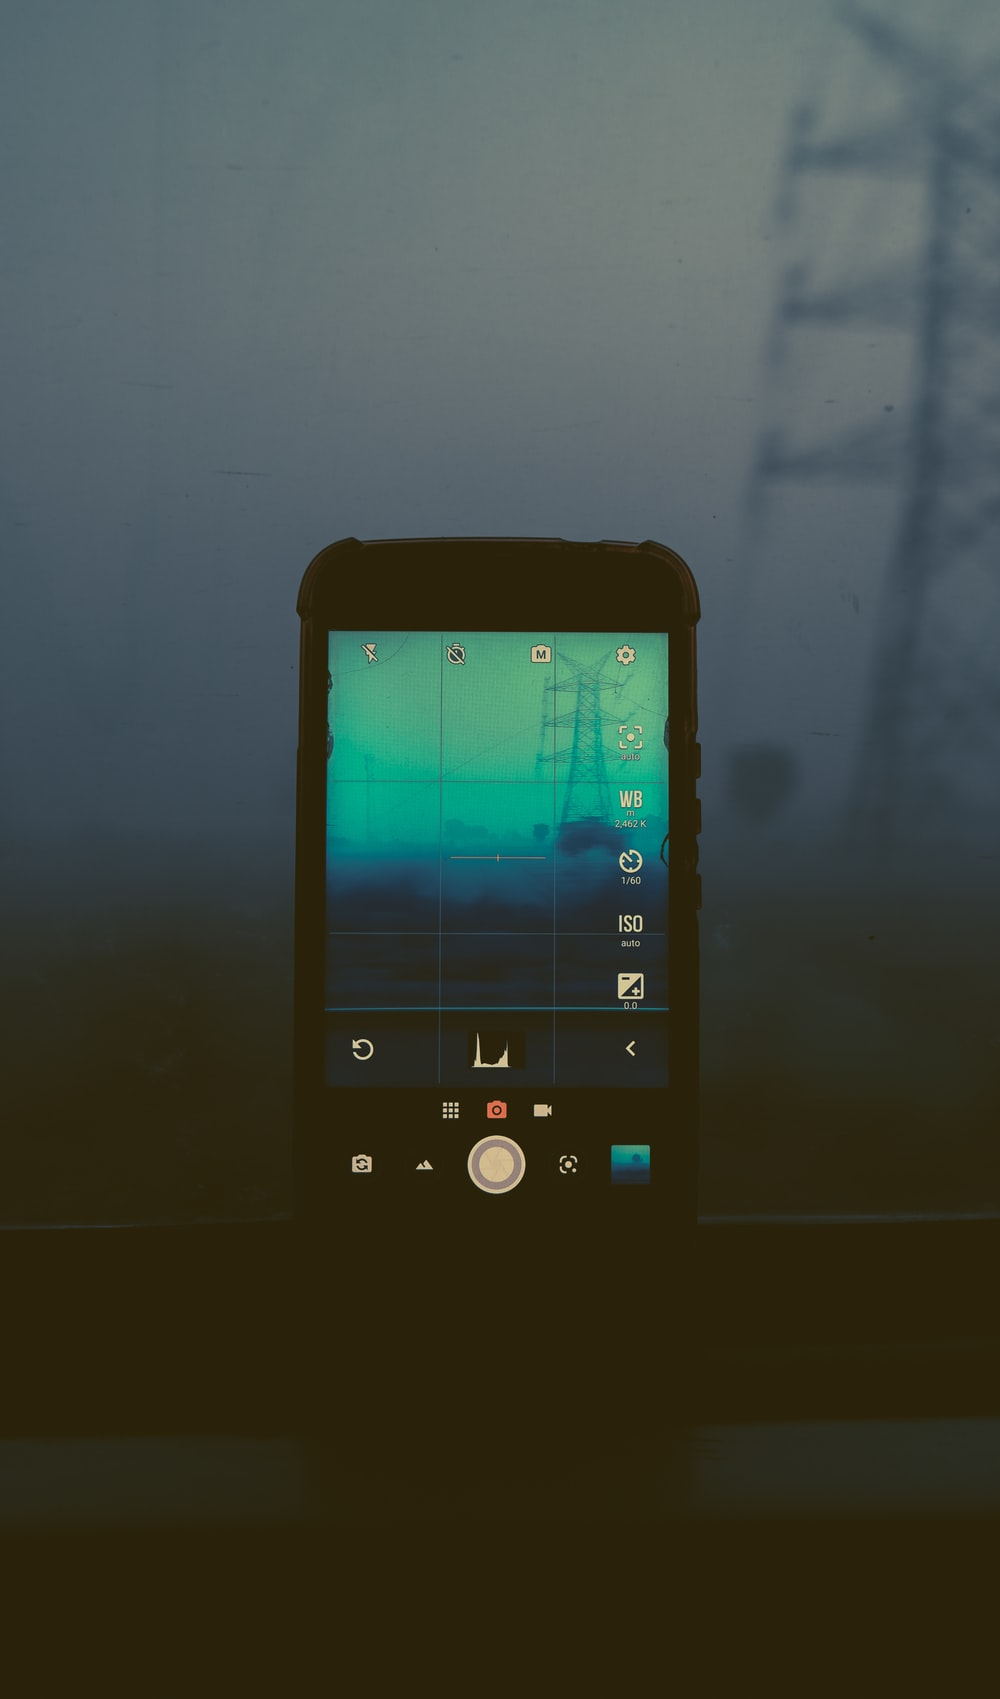 white android smartphone displaying icons